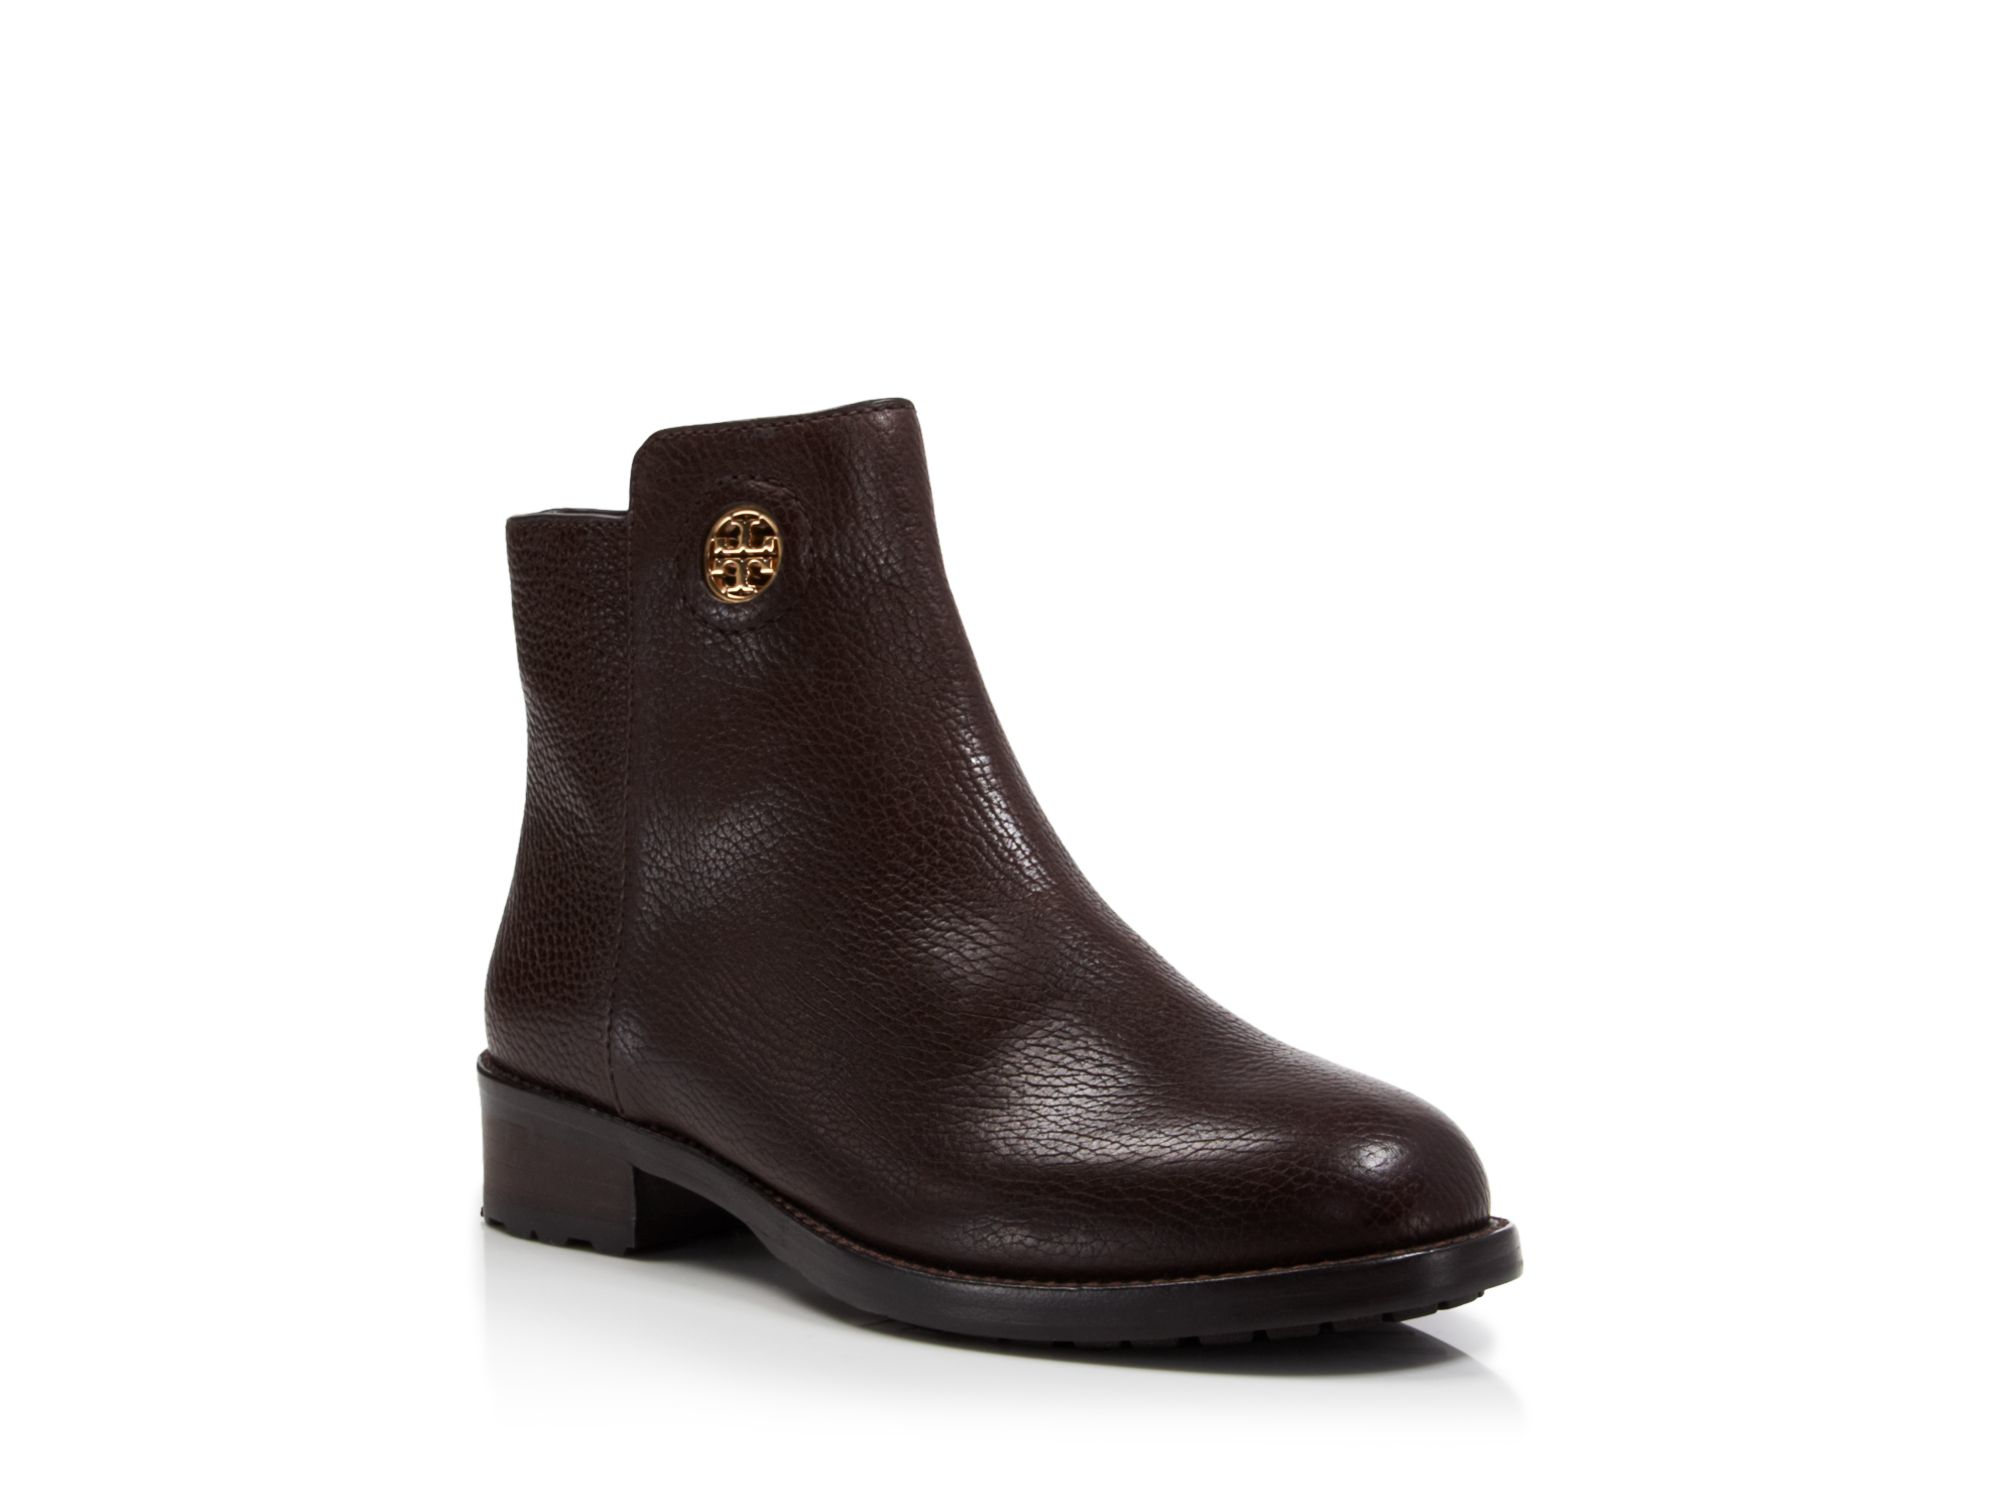 8f82b5c22d66 Lyst - Tory Burch Booties - Junction Flat in Brown